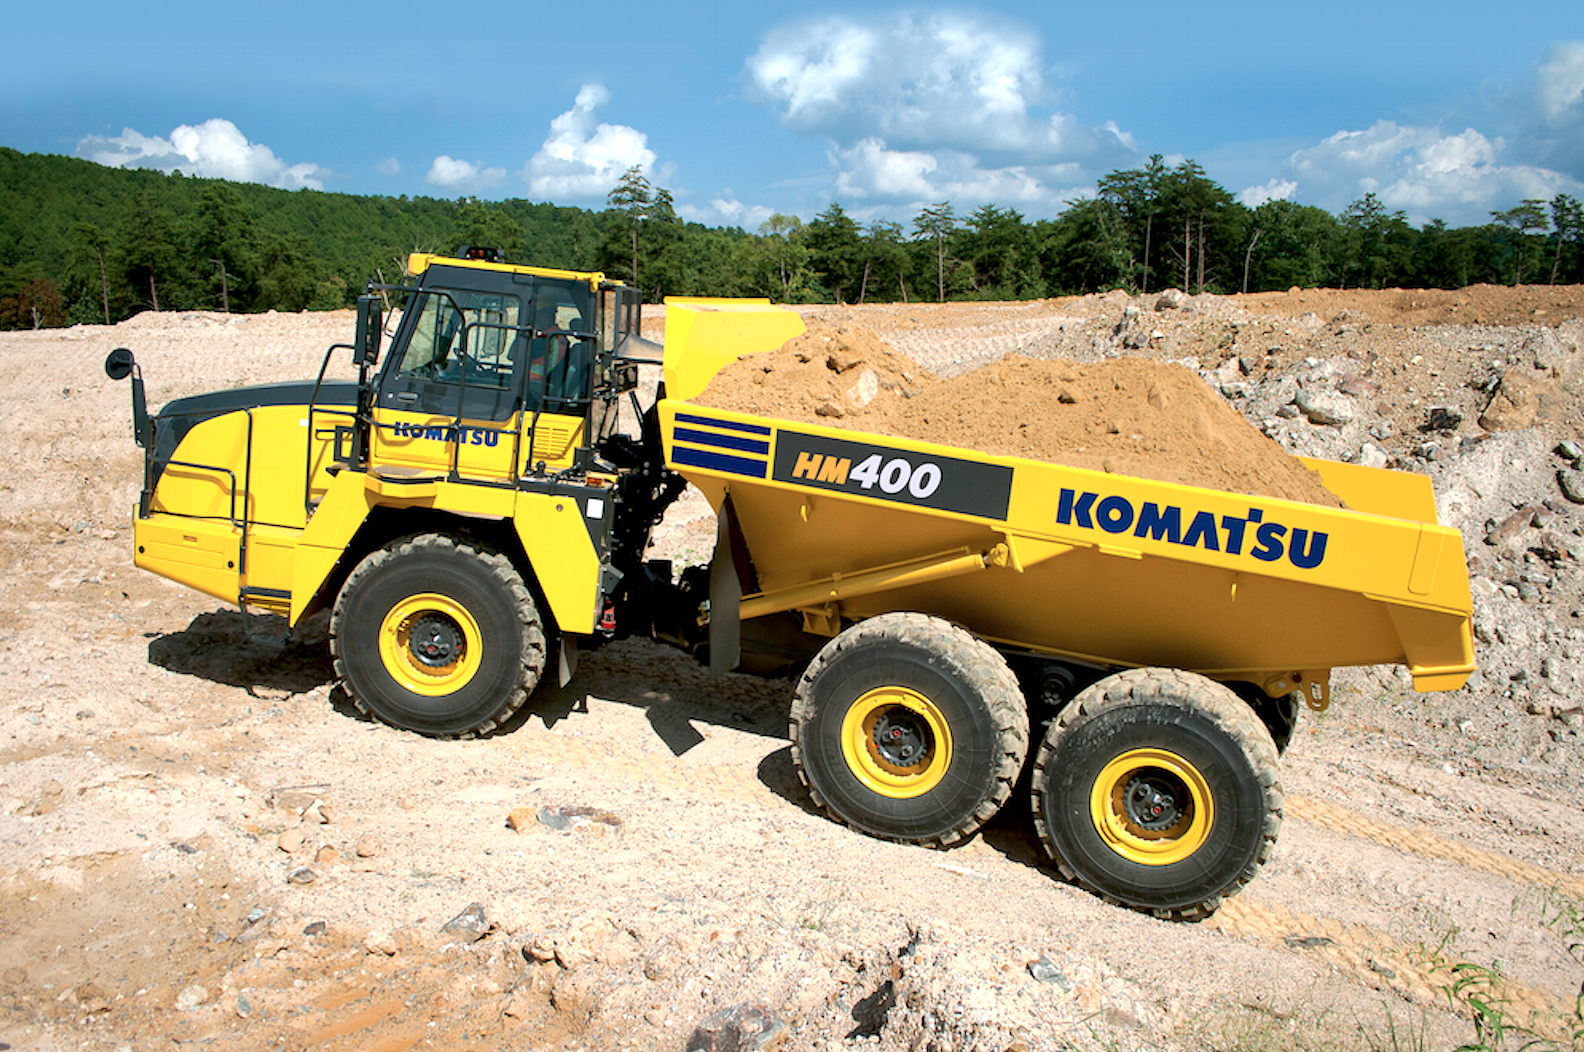 gas powered remote control truck with Komatsu Launches Hm400 5 Articulated Dump Truck on Watch in addition Changing Fuel Of Delivery Fedex Driver as well Wholesale 1 4 Scale Gas Rc Cars likewise Class C Motorhomes Diesel Engine further Komatsu Launches Hm400 5 Articulated Dump Truck.